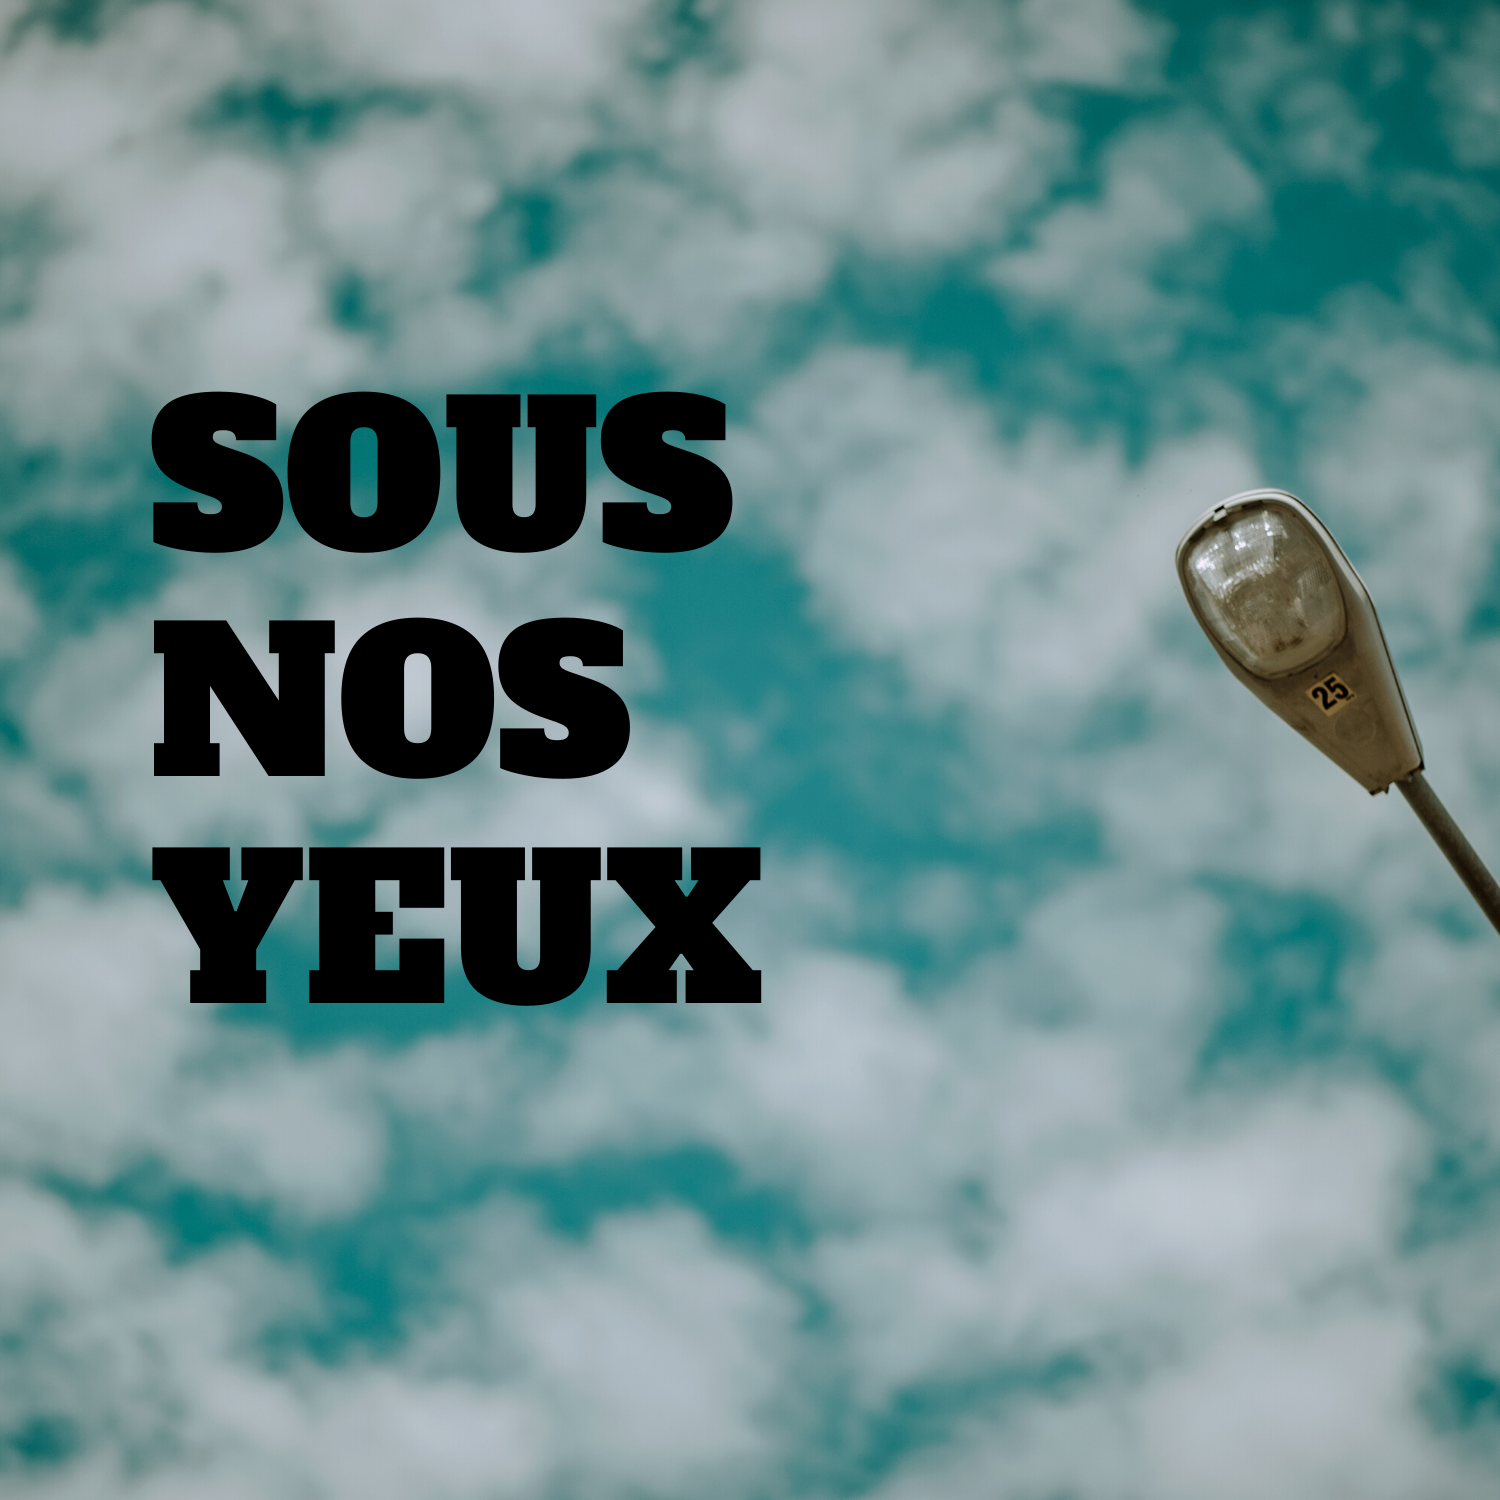 Sous nos yeux/ Right Under Our Eyes: The International Observatory on Sexual Exploitation of the Fondation Scelles launches a podcast series